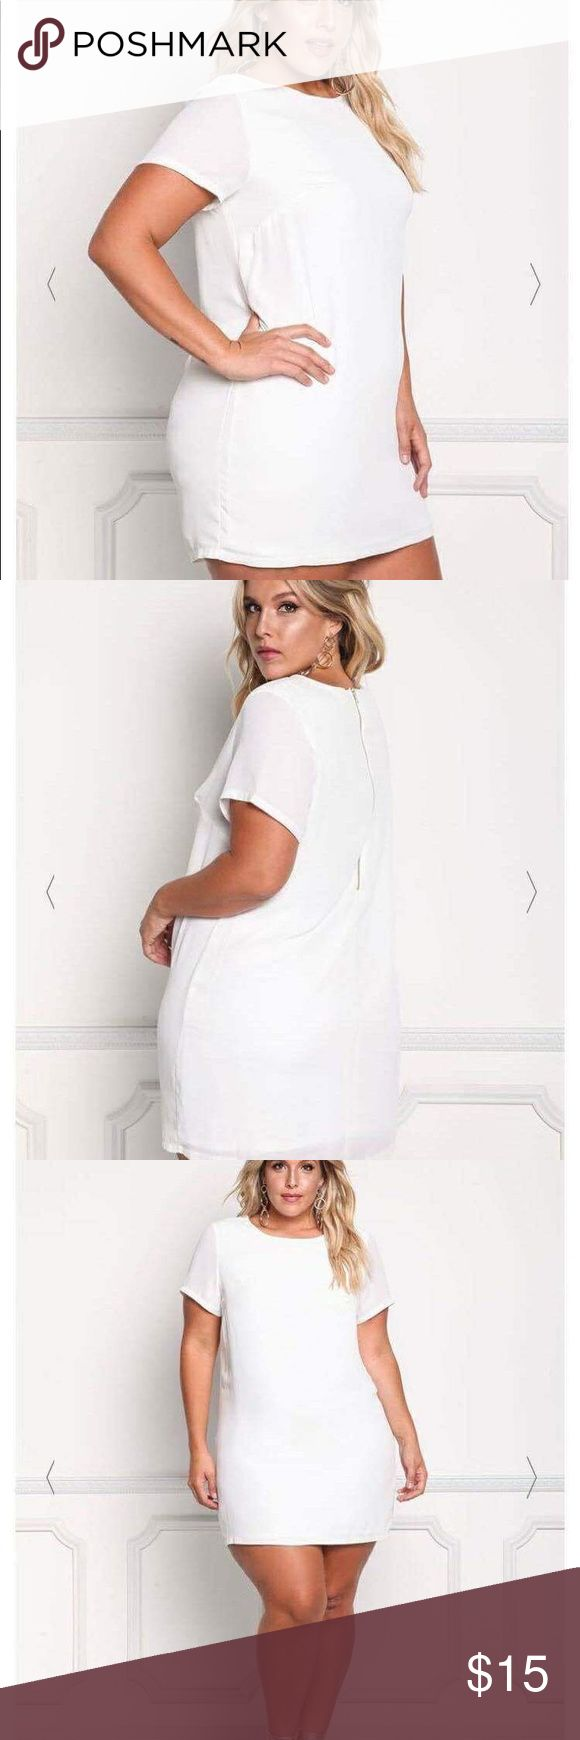 NET DEB SHOP white shift dress BRAND NEW WITH TAGS DEB-SHOP brand white shift dress in white with a gold zipper down the back. It's a very simple dress so there is SO much you can do with it accessory wise. There are many, many options. DEBSHOP Dresses Mini